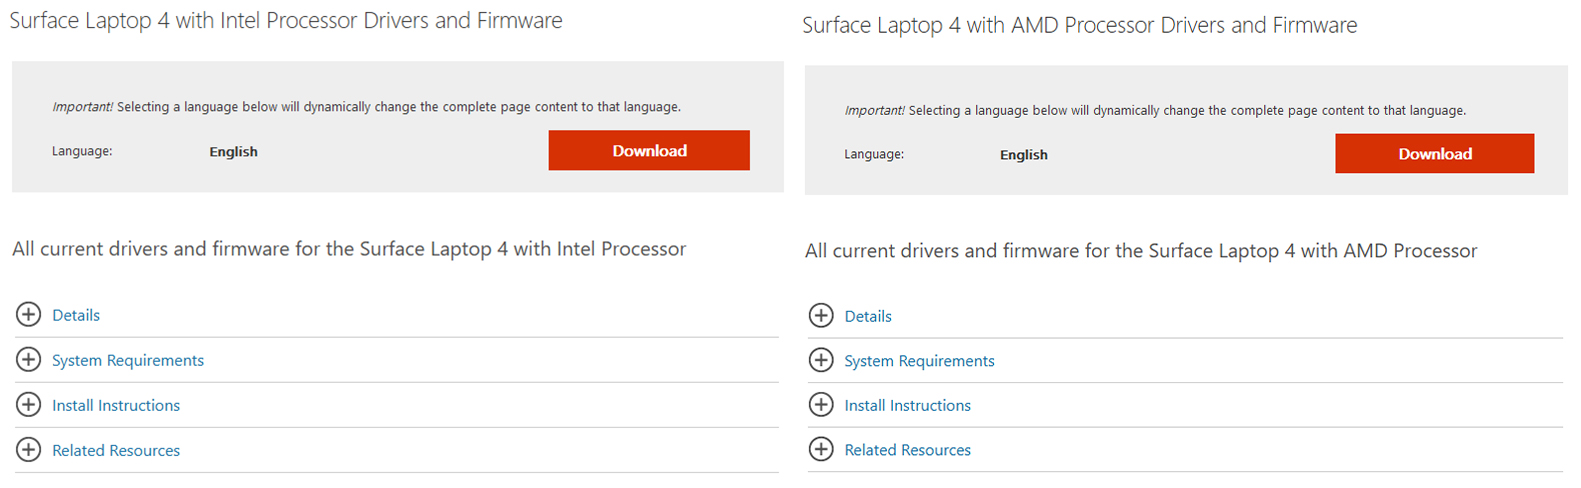 Microsoft Surface Laptop 4 support page screenshots